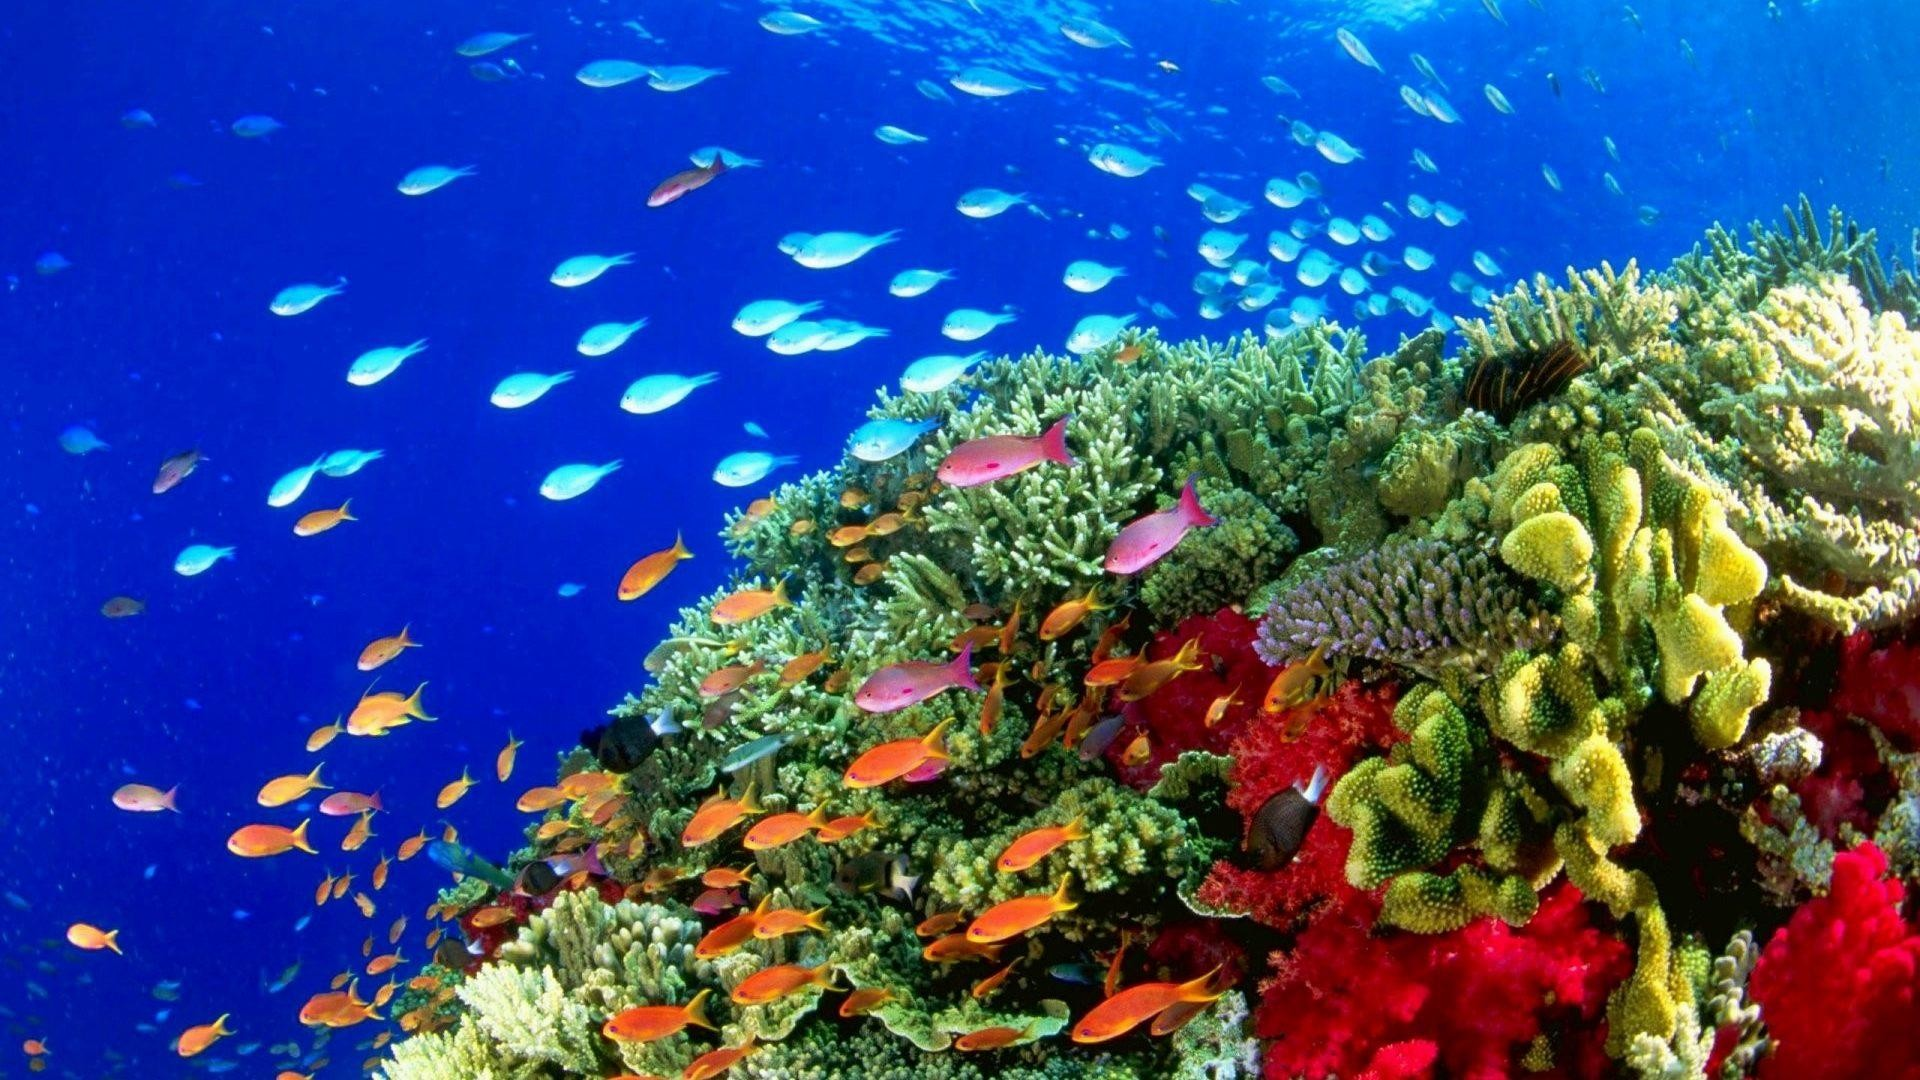 Coral Reef Live Wallpaper (59+ images)  Coral Reef Wallpaper 1920x1080